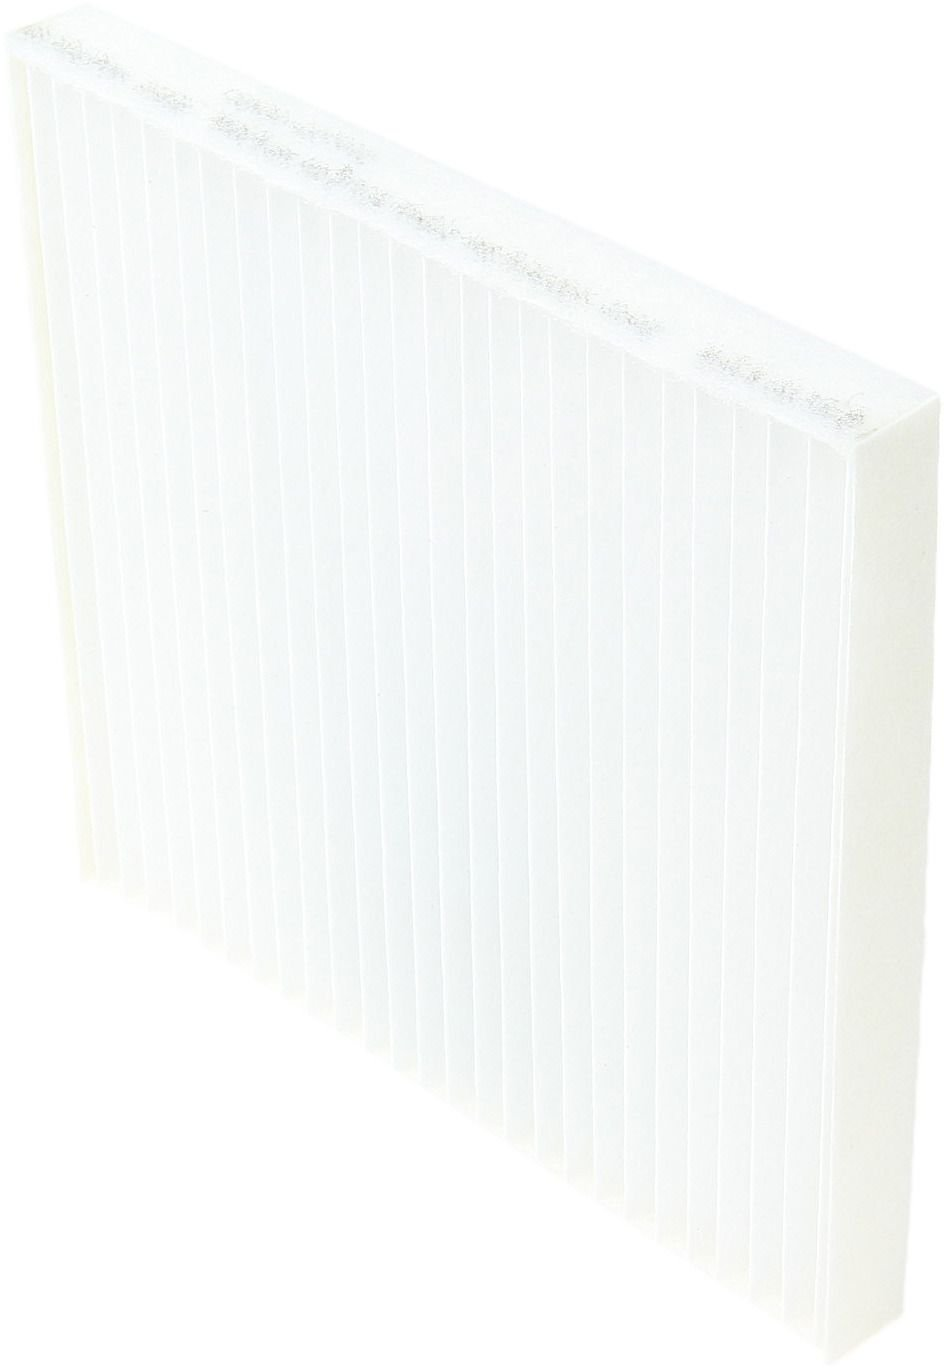 Ford Edge Cabin Air Filter  L Denso   Oe Recommended Replacement Filter Premium Electrostatically Charged Media Captures Ultra Fine